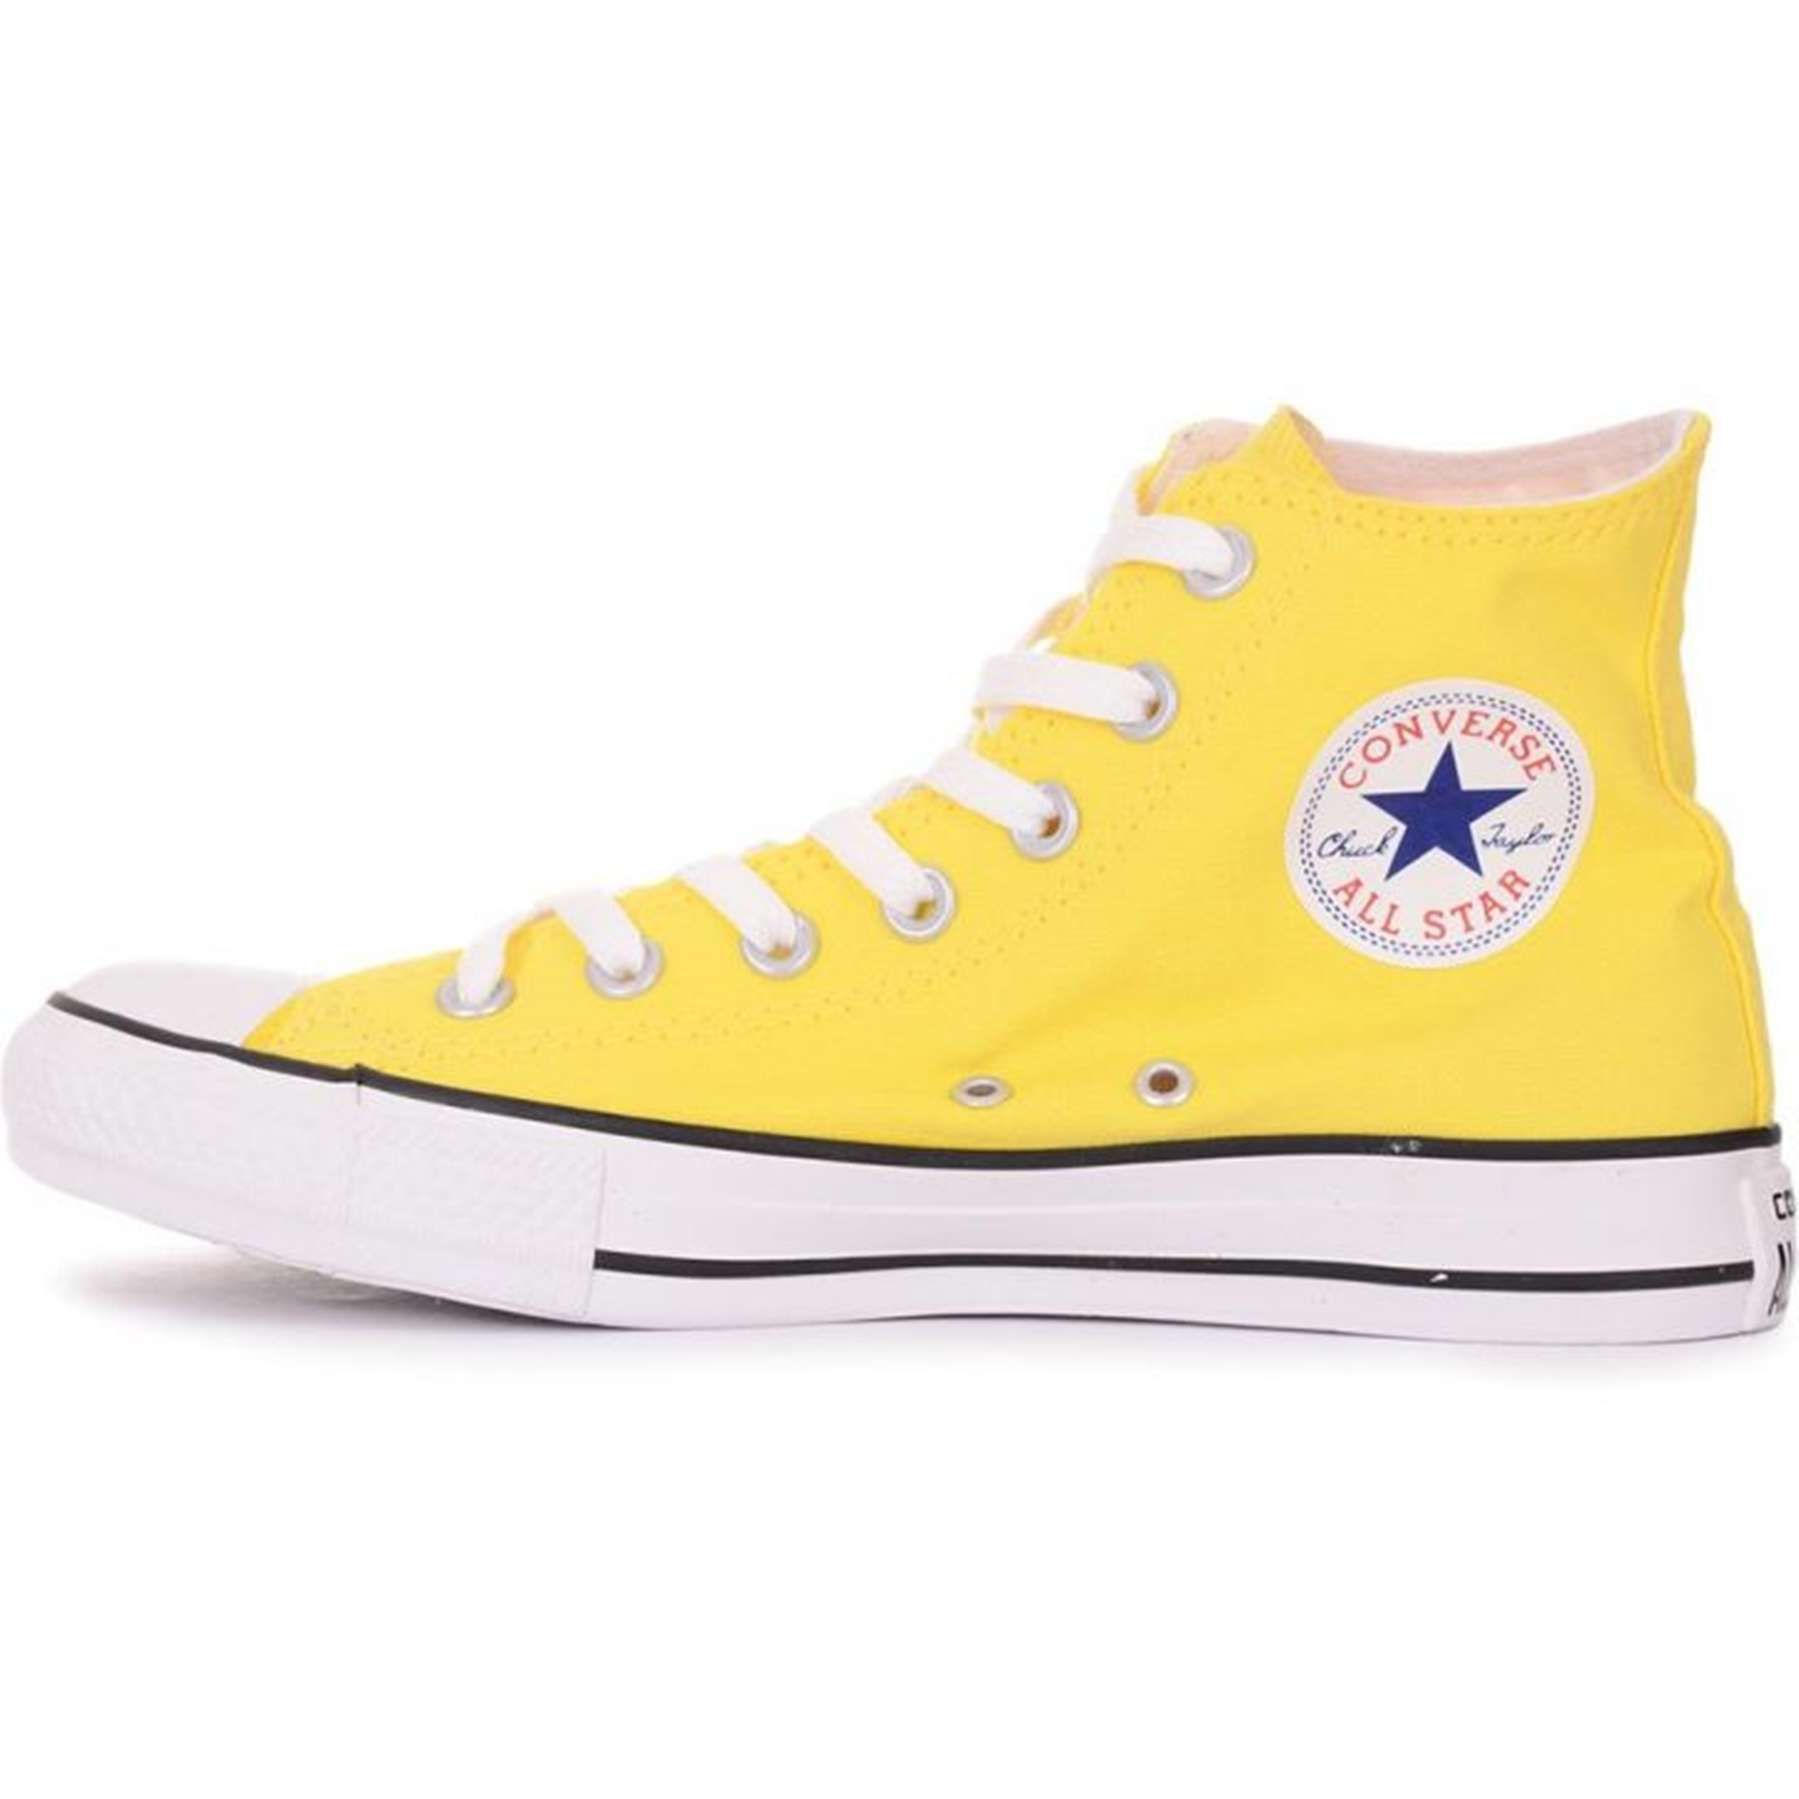 4a301f5a394 all star amarelo